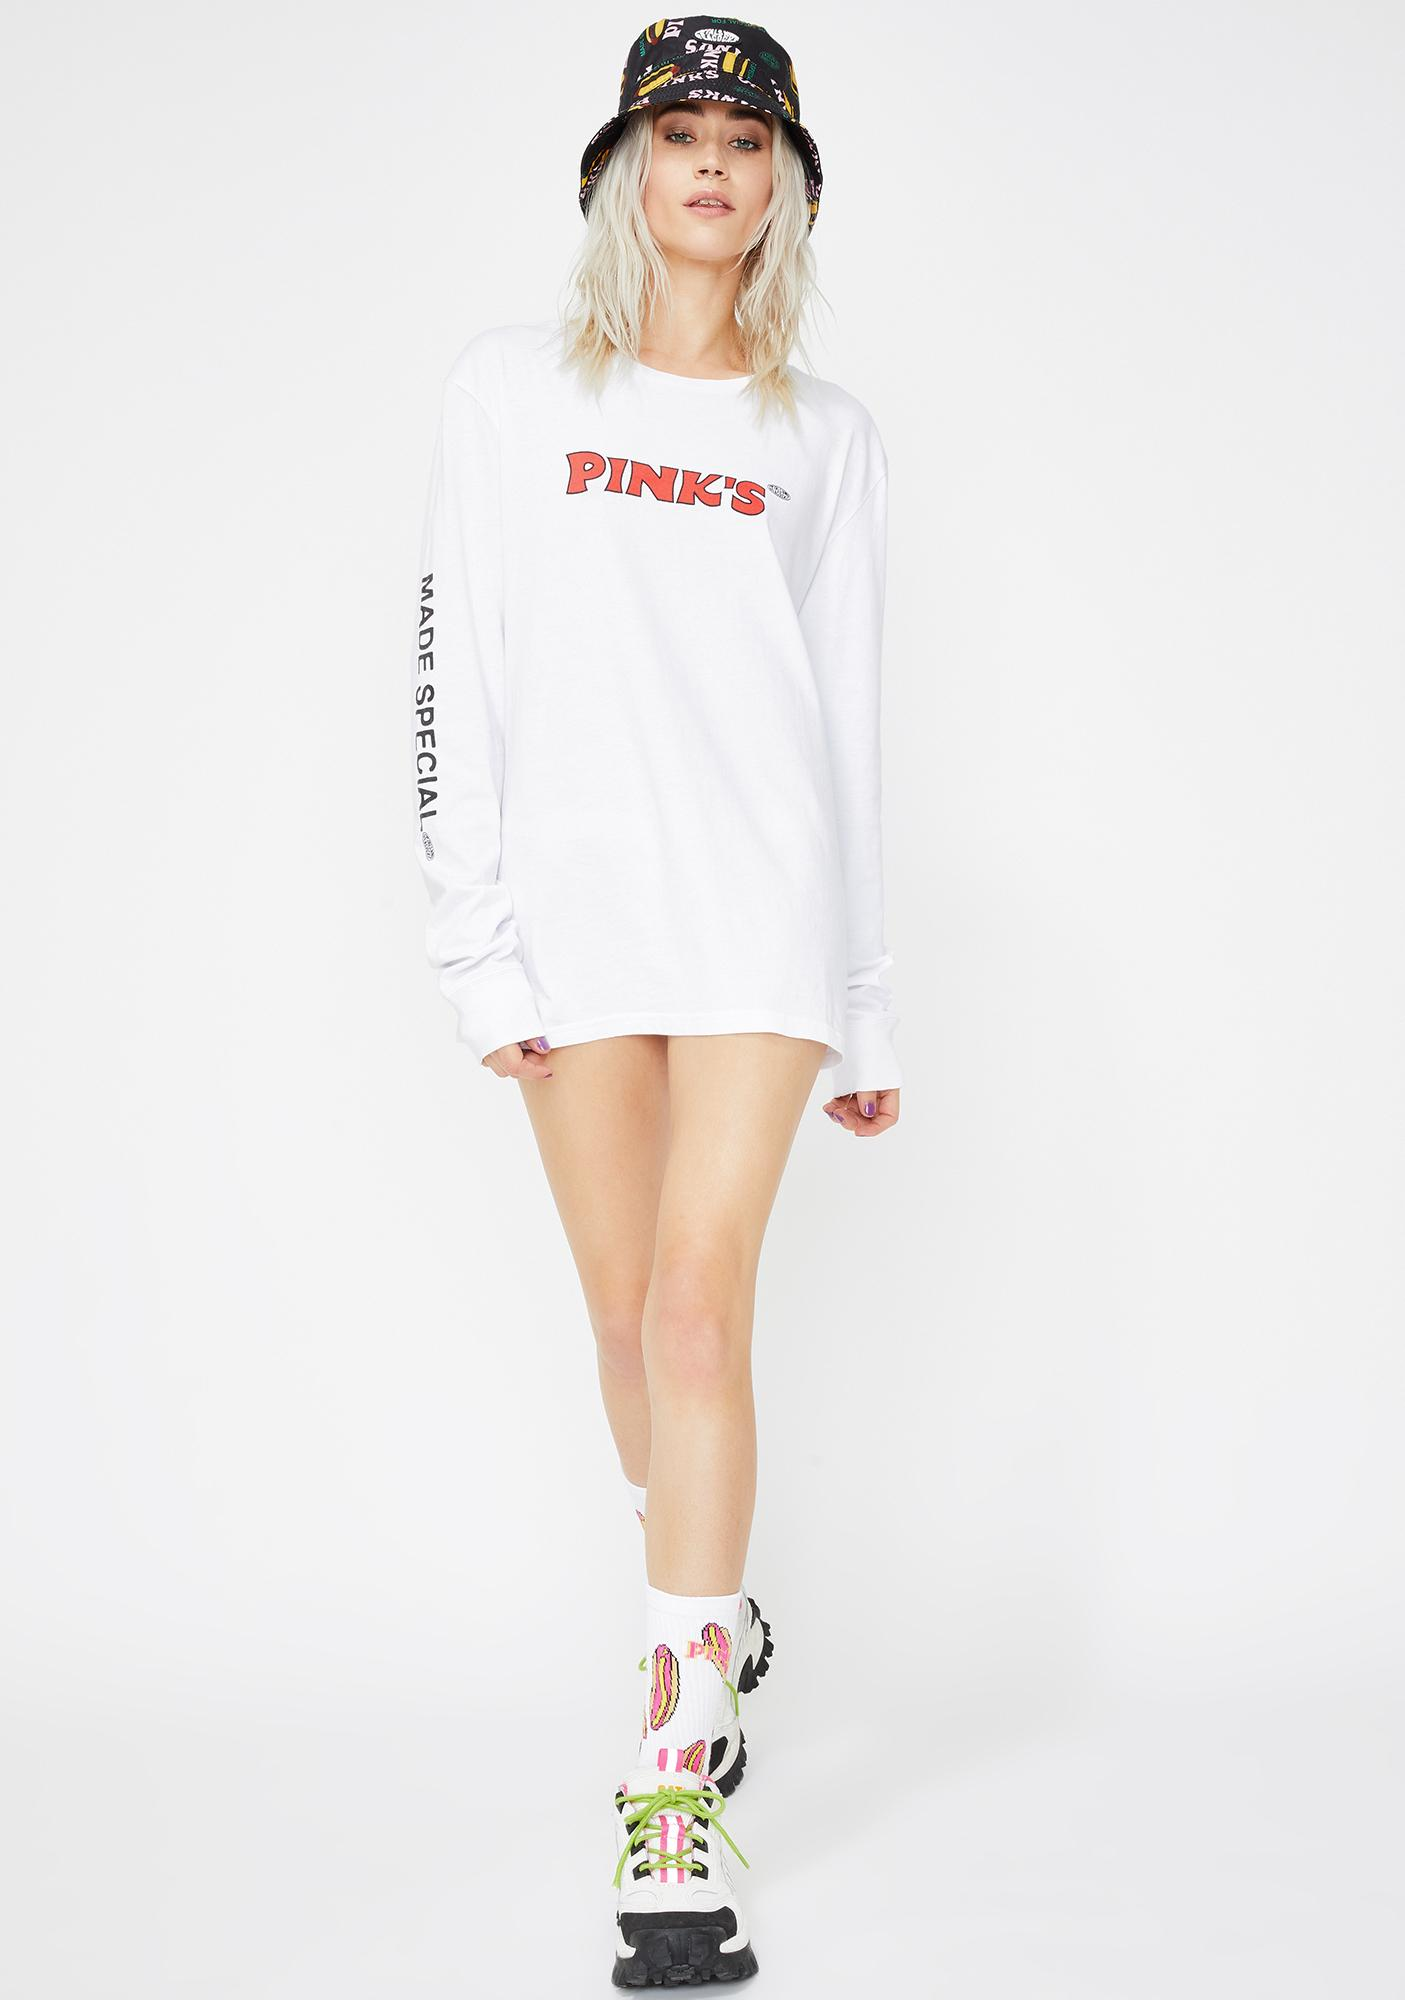 Petals and Peacocks X Pink's Hot Dogs Pink's Shine Long Sleeve Tee